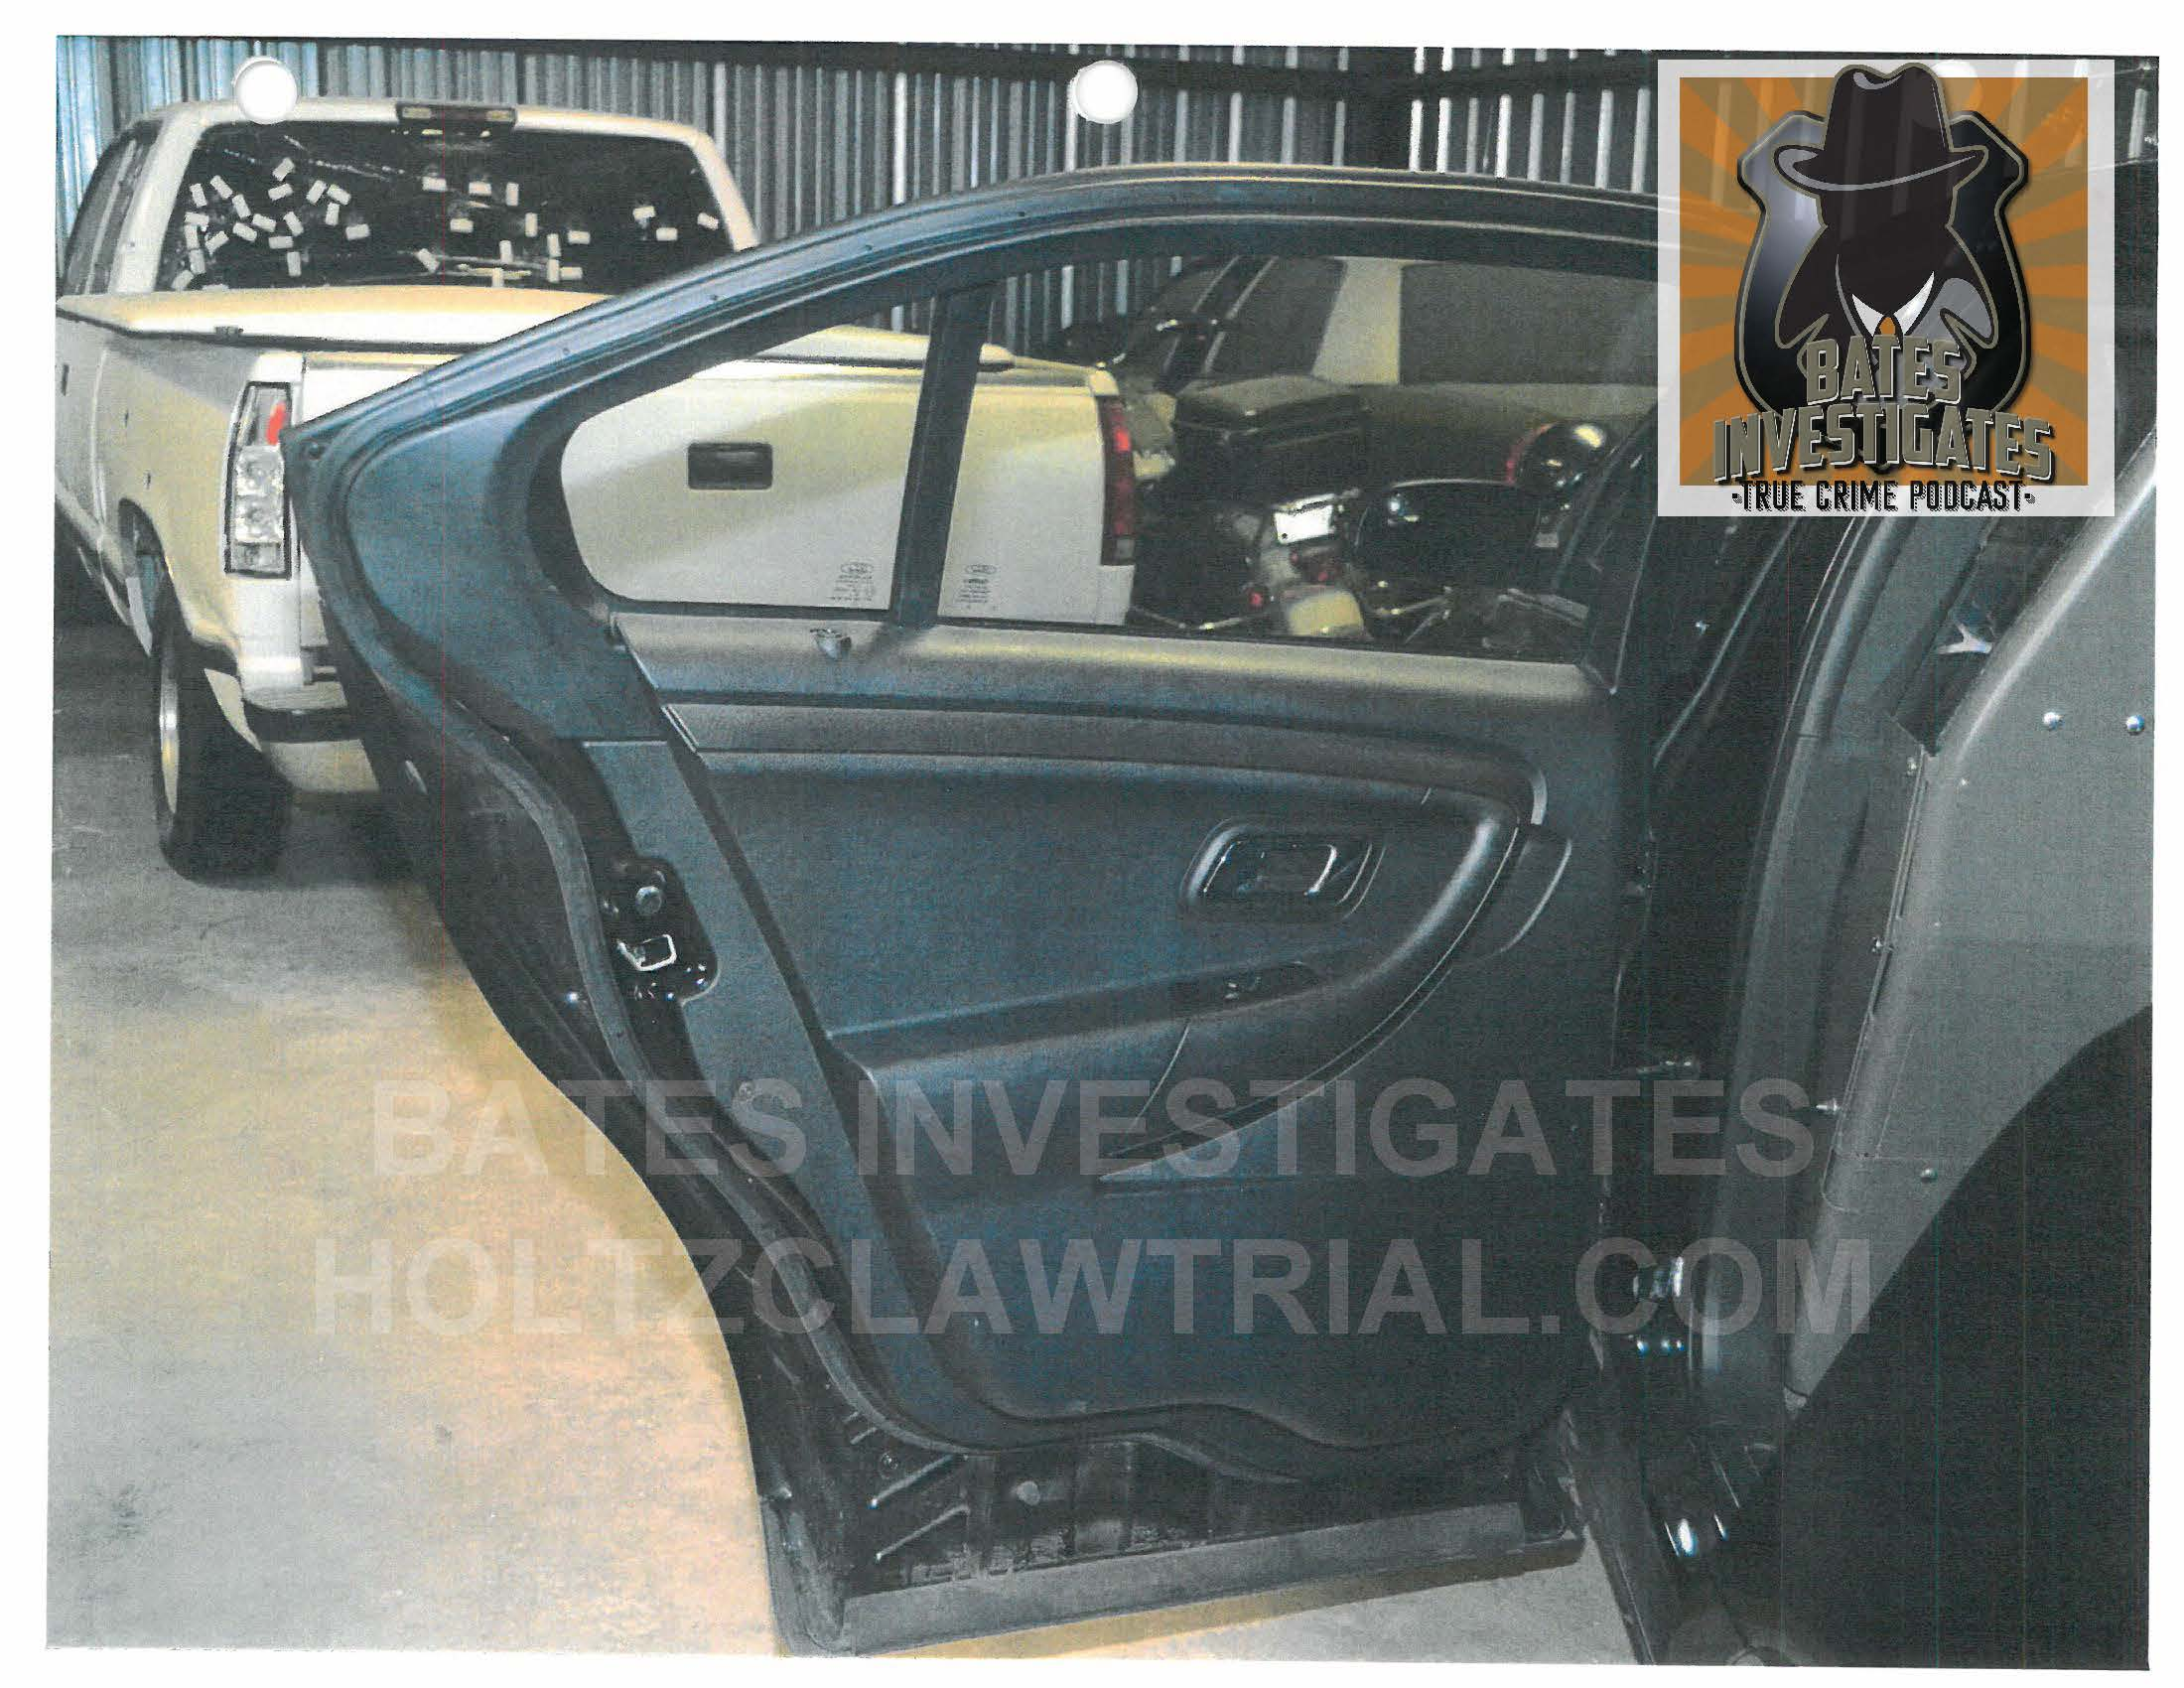 Holtzclaw Daniel - OCPD Patrol Car Photos Watermarked_Page_16.jpg